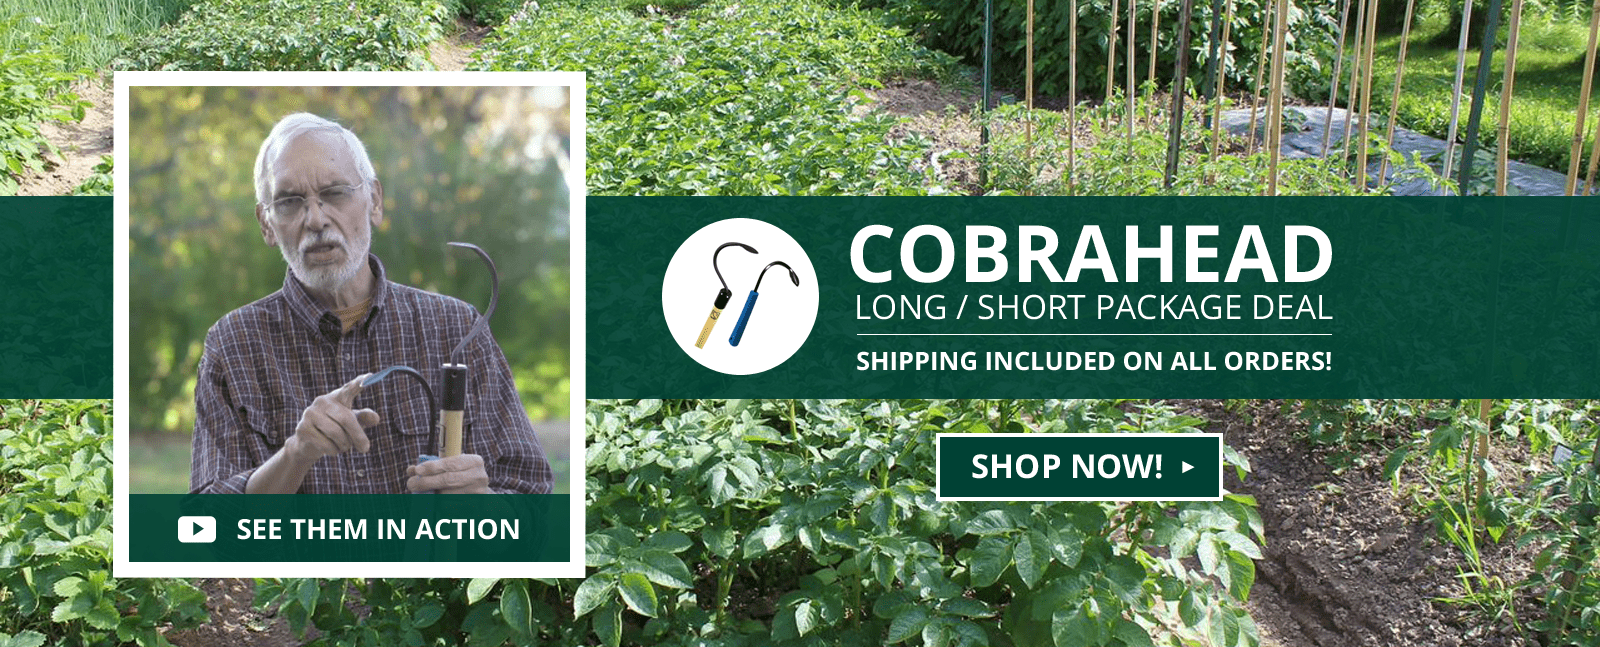 CobraHead Long/Short Package Deal